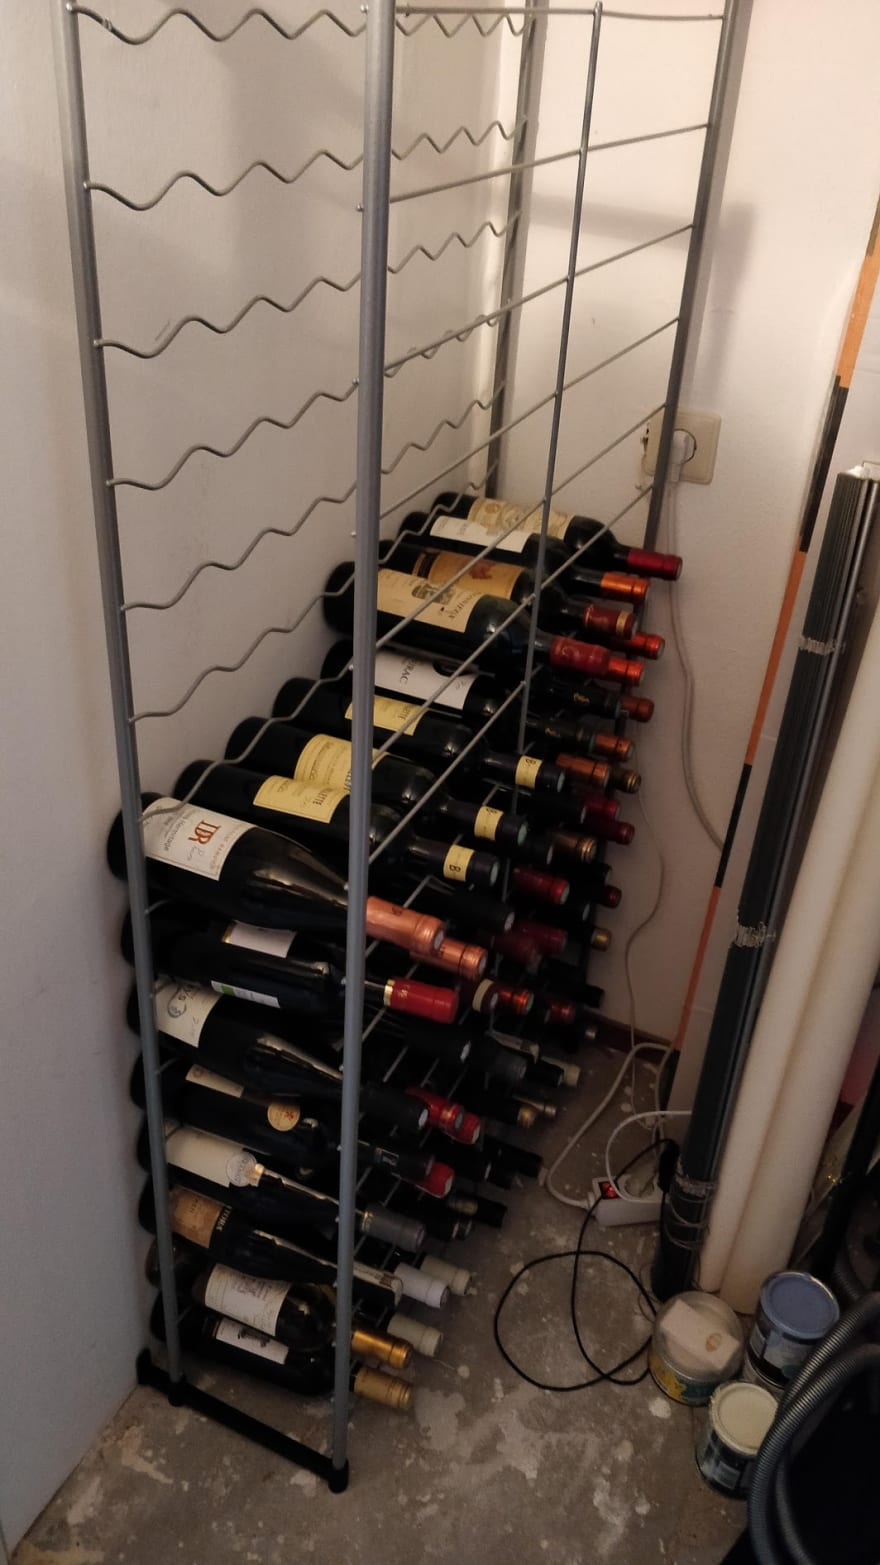 Building a wine cellar monitoring system - Part 1 : The hardware and setup